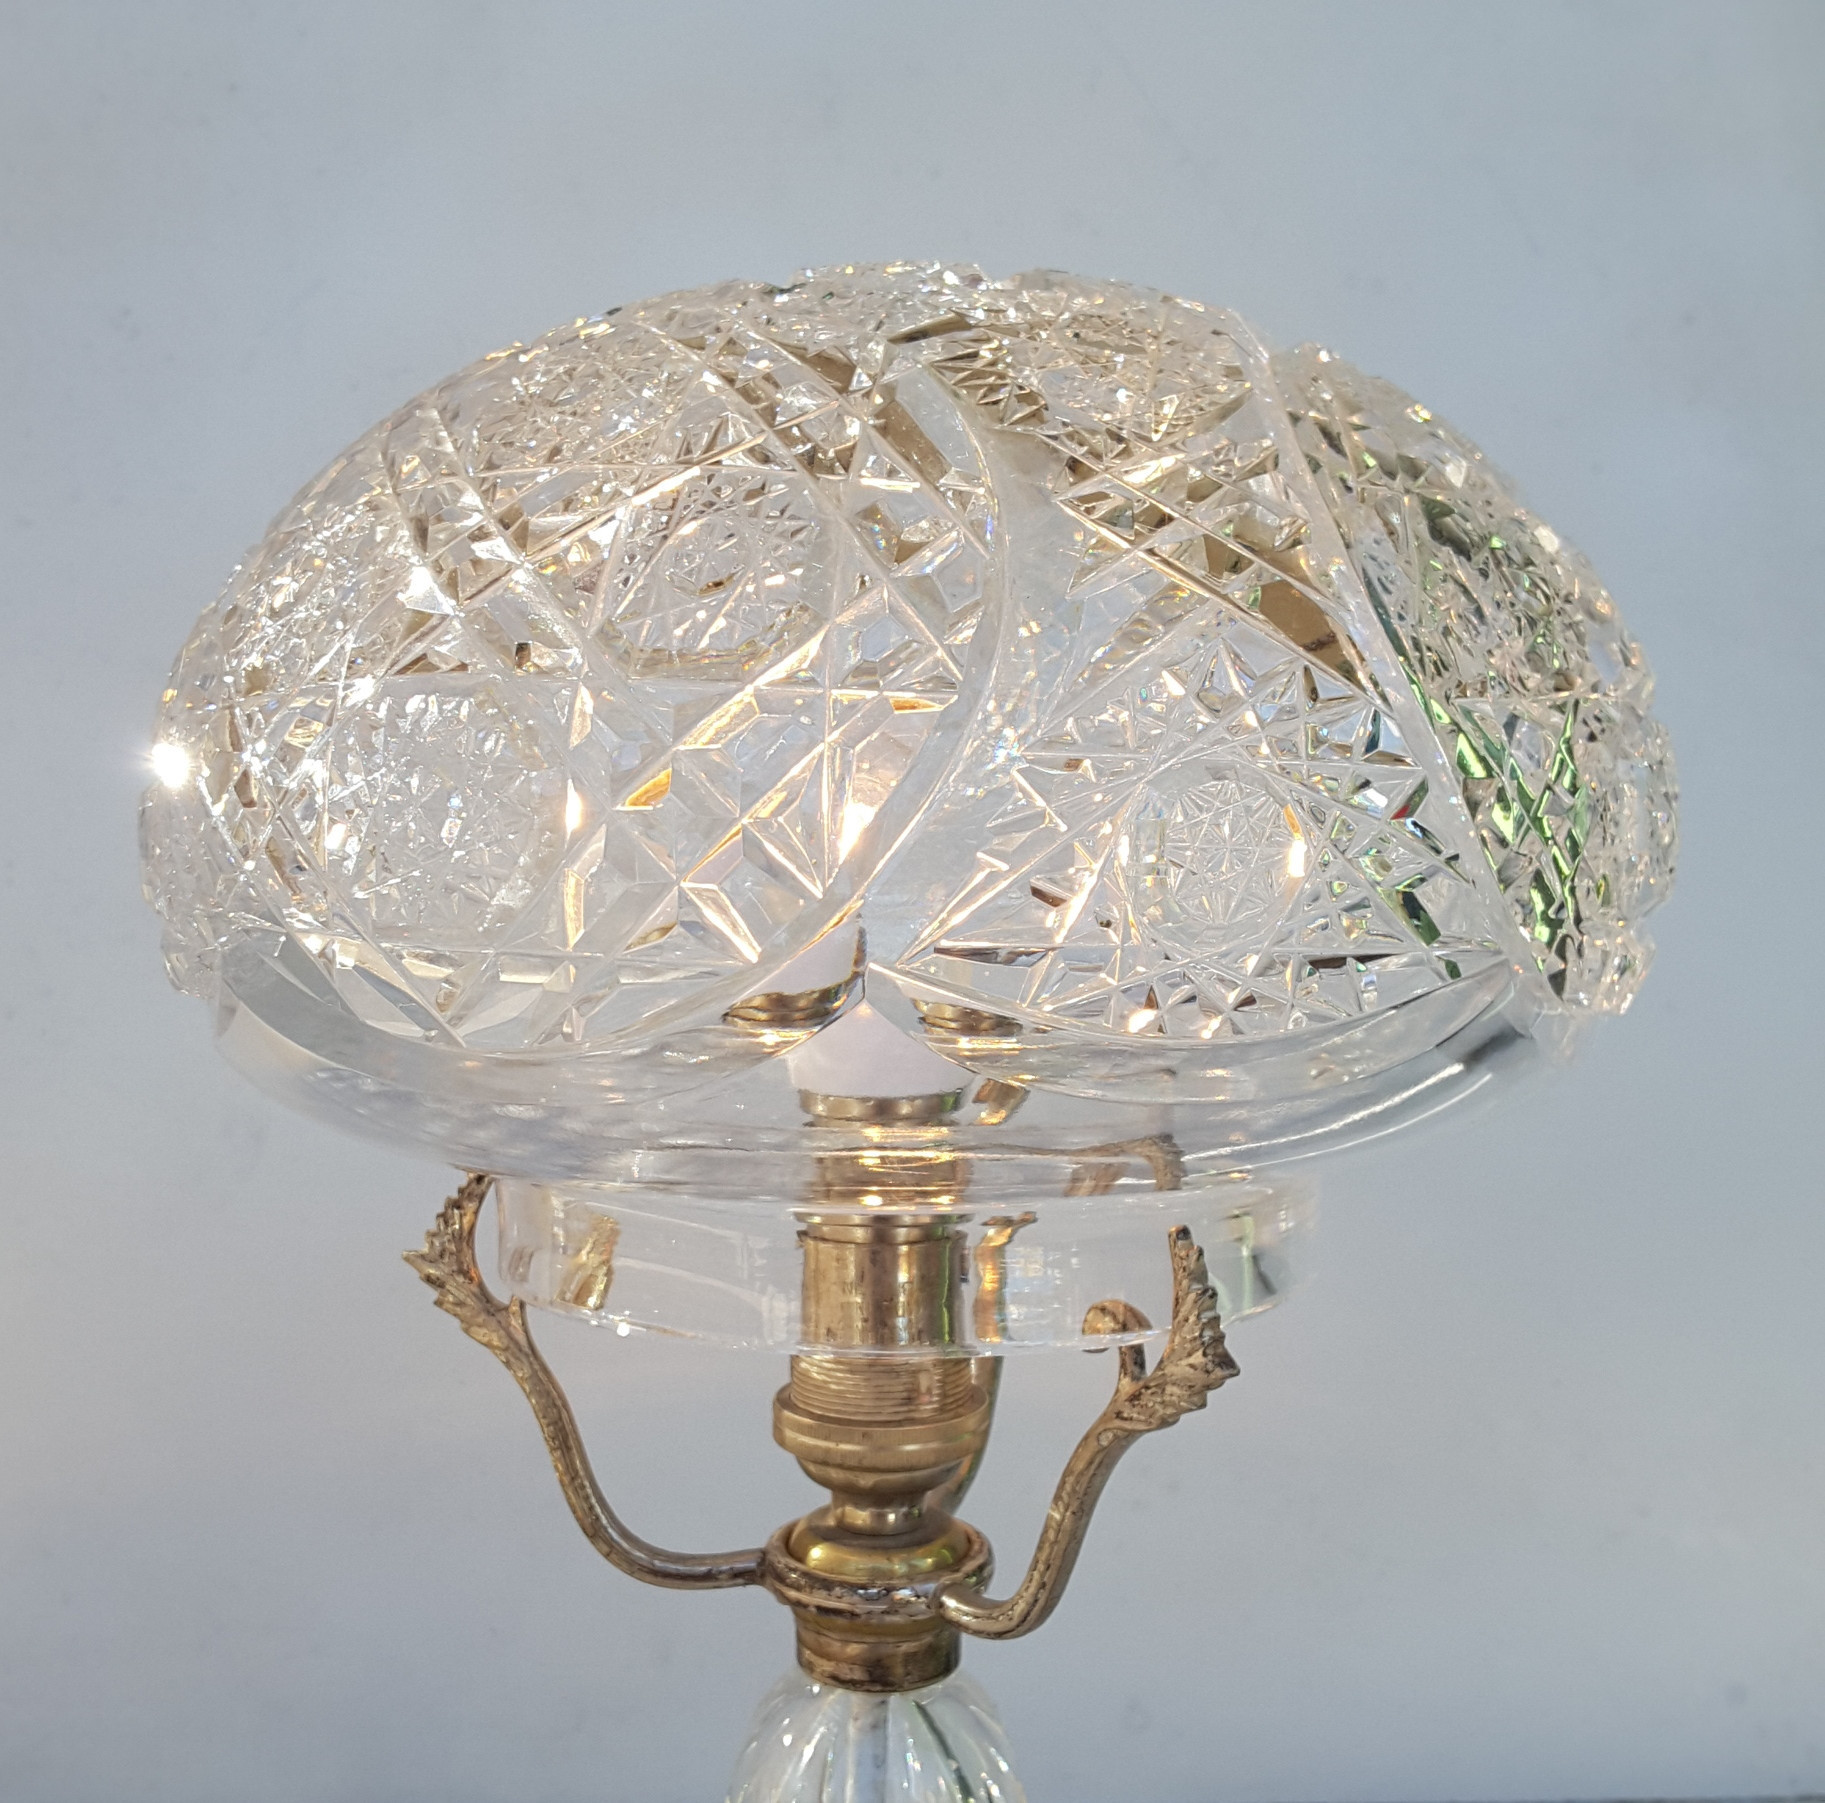 glass ball vase of clear glass table lamp beautiful 3 way table lamps luxury furniture with clear glass table lamp elegant crystal glass table lamps midcentury belgian emerald green crystal of clear